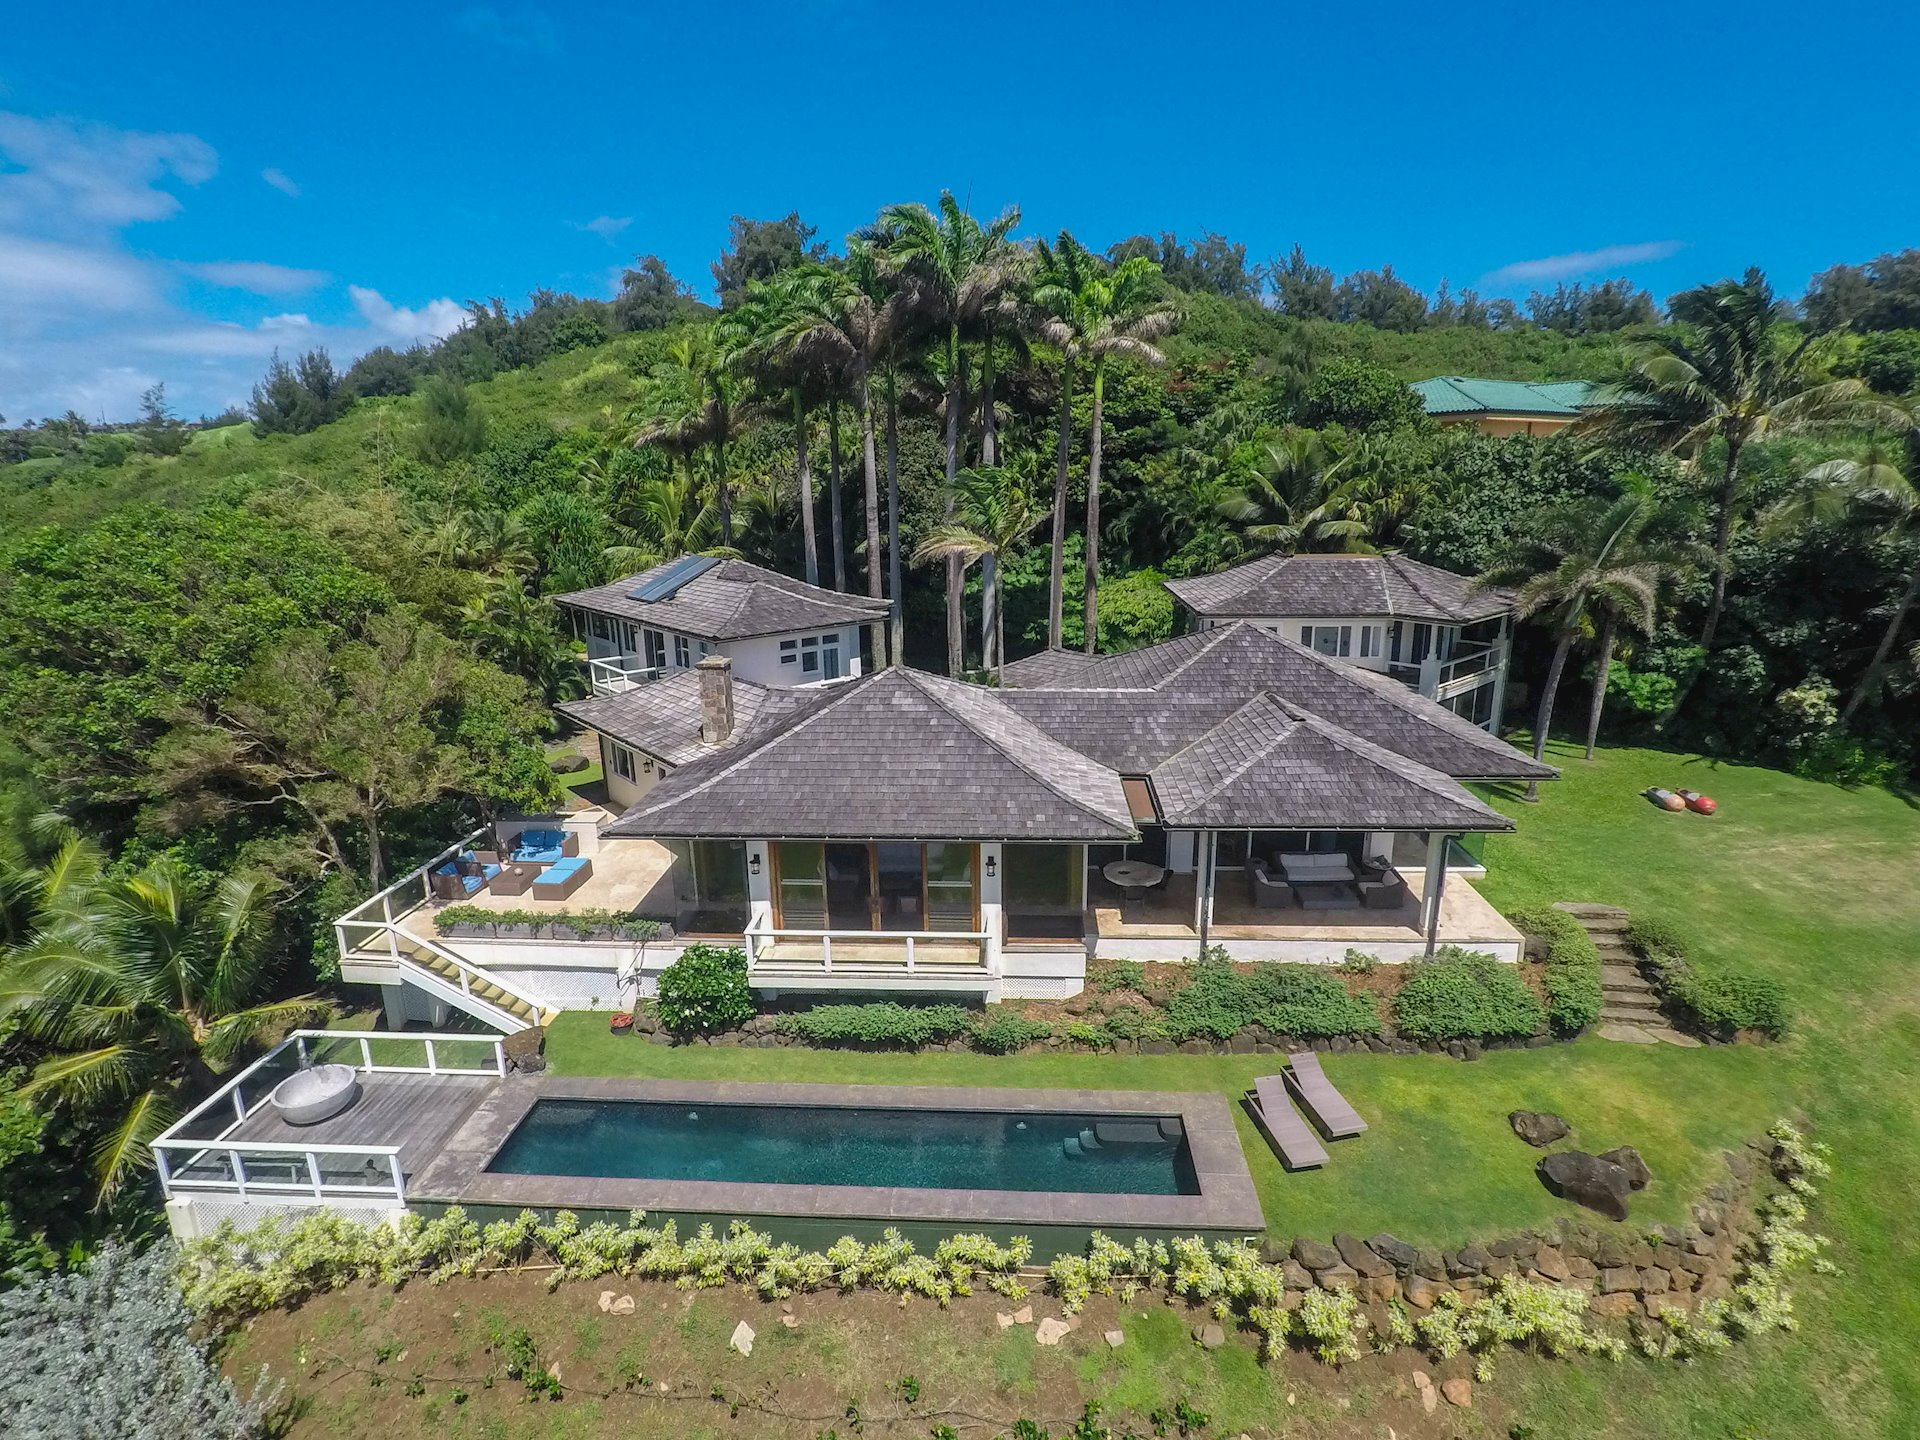 The former home of prominent architect Elliott Rosenblum, Kahili Beach Estate has welcomed numerous celebrity families as a cherished...